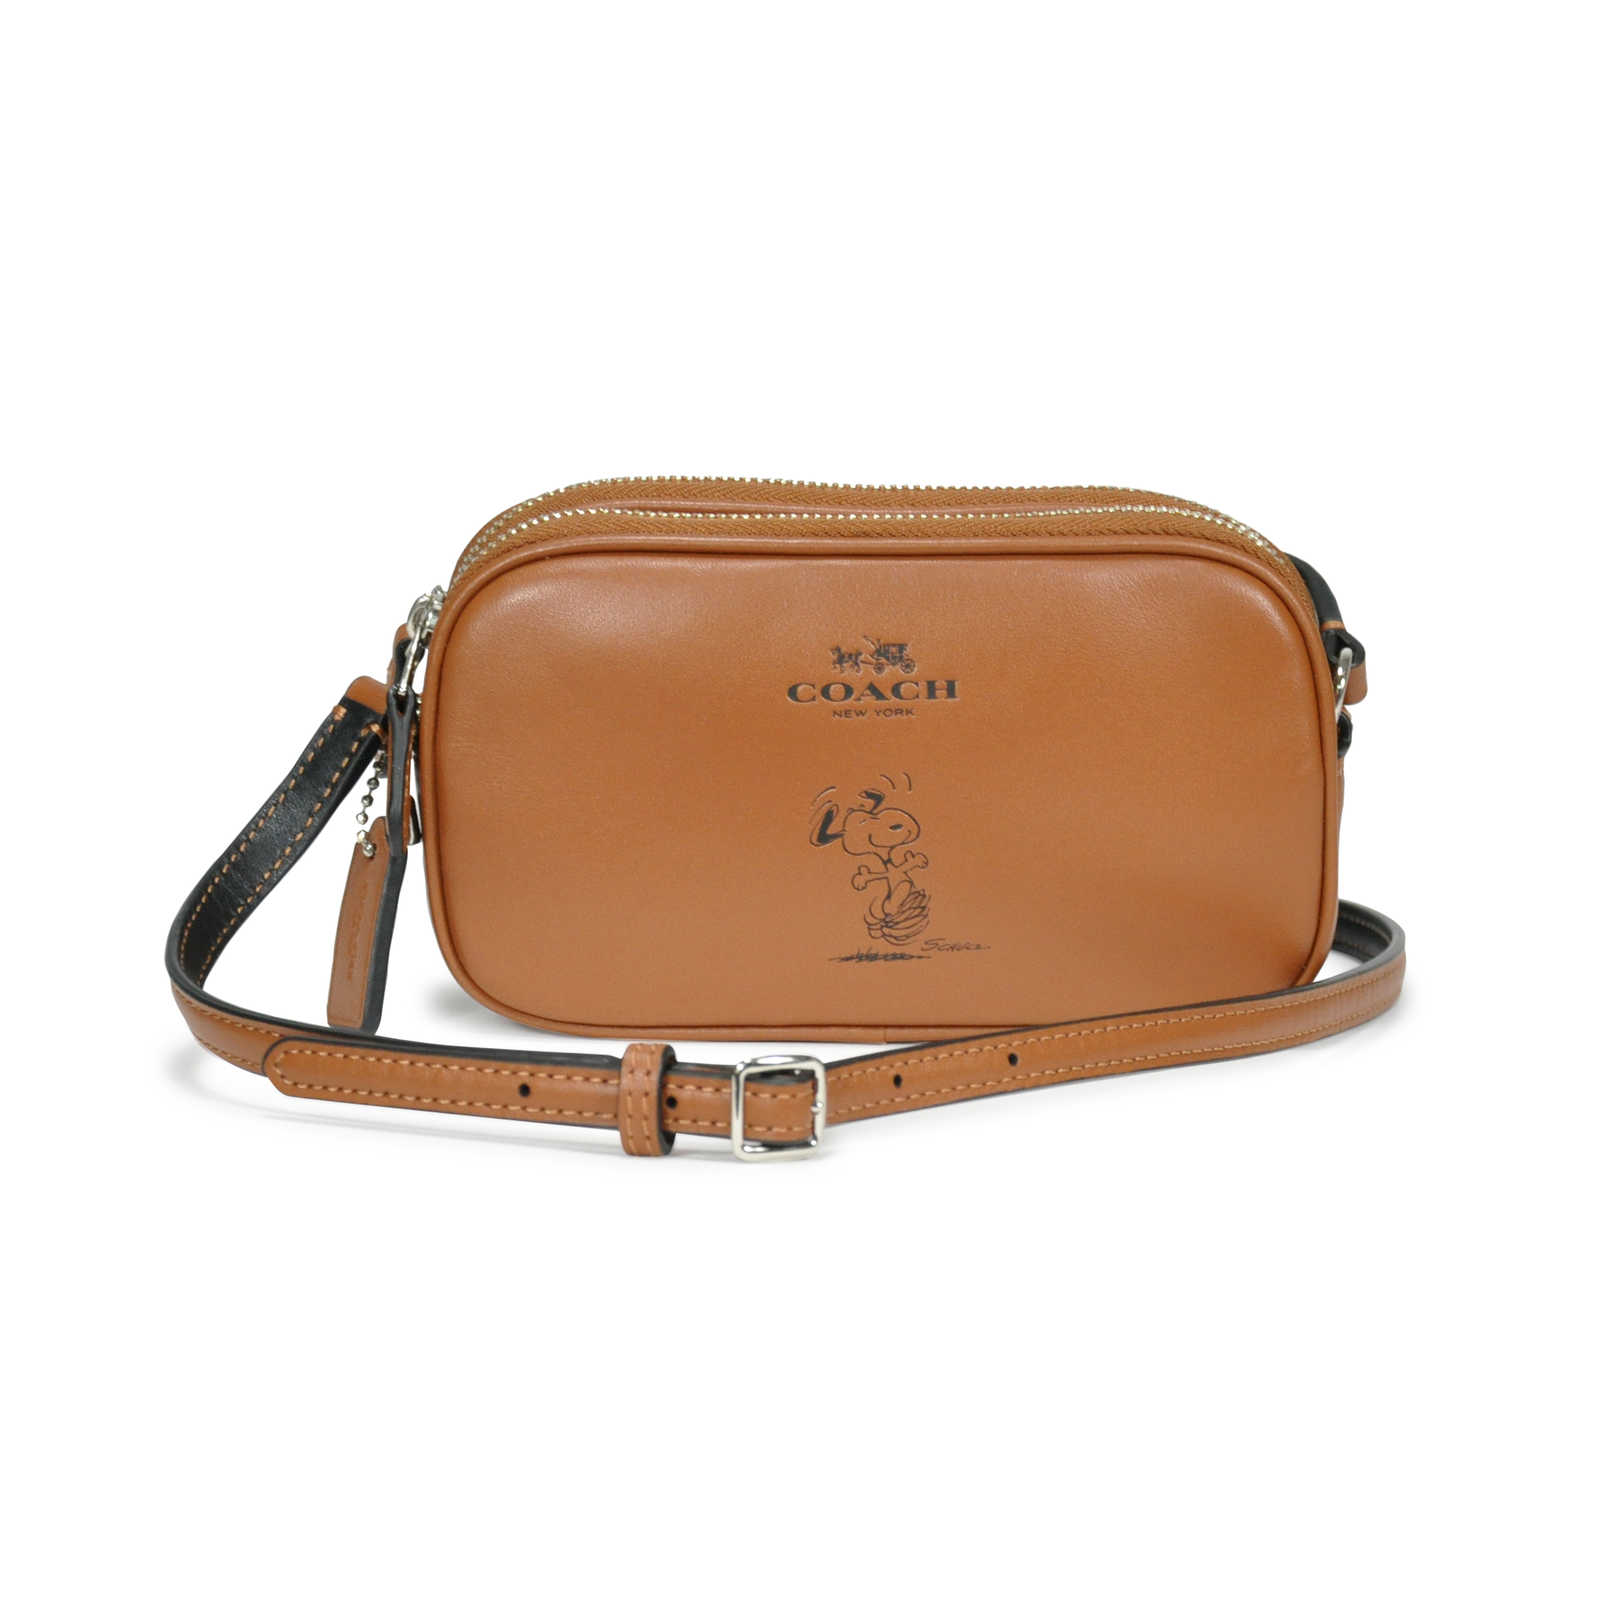 Authentic Pre Owned Coach Peanuts Crossbody Bag Pss 229 00014 Thumbnail